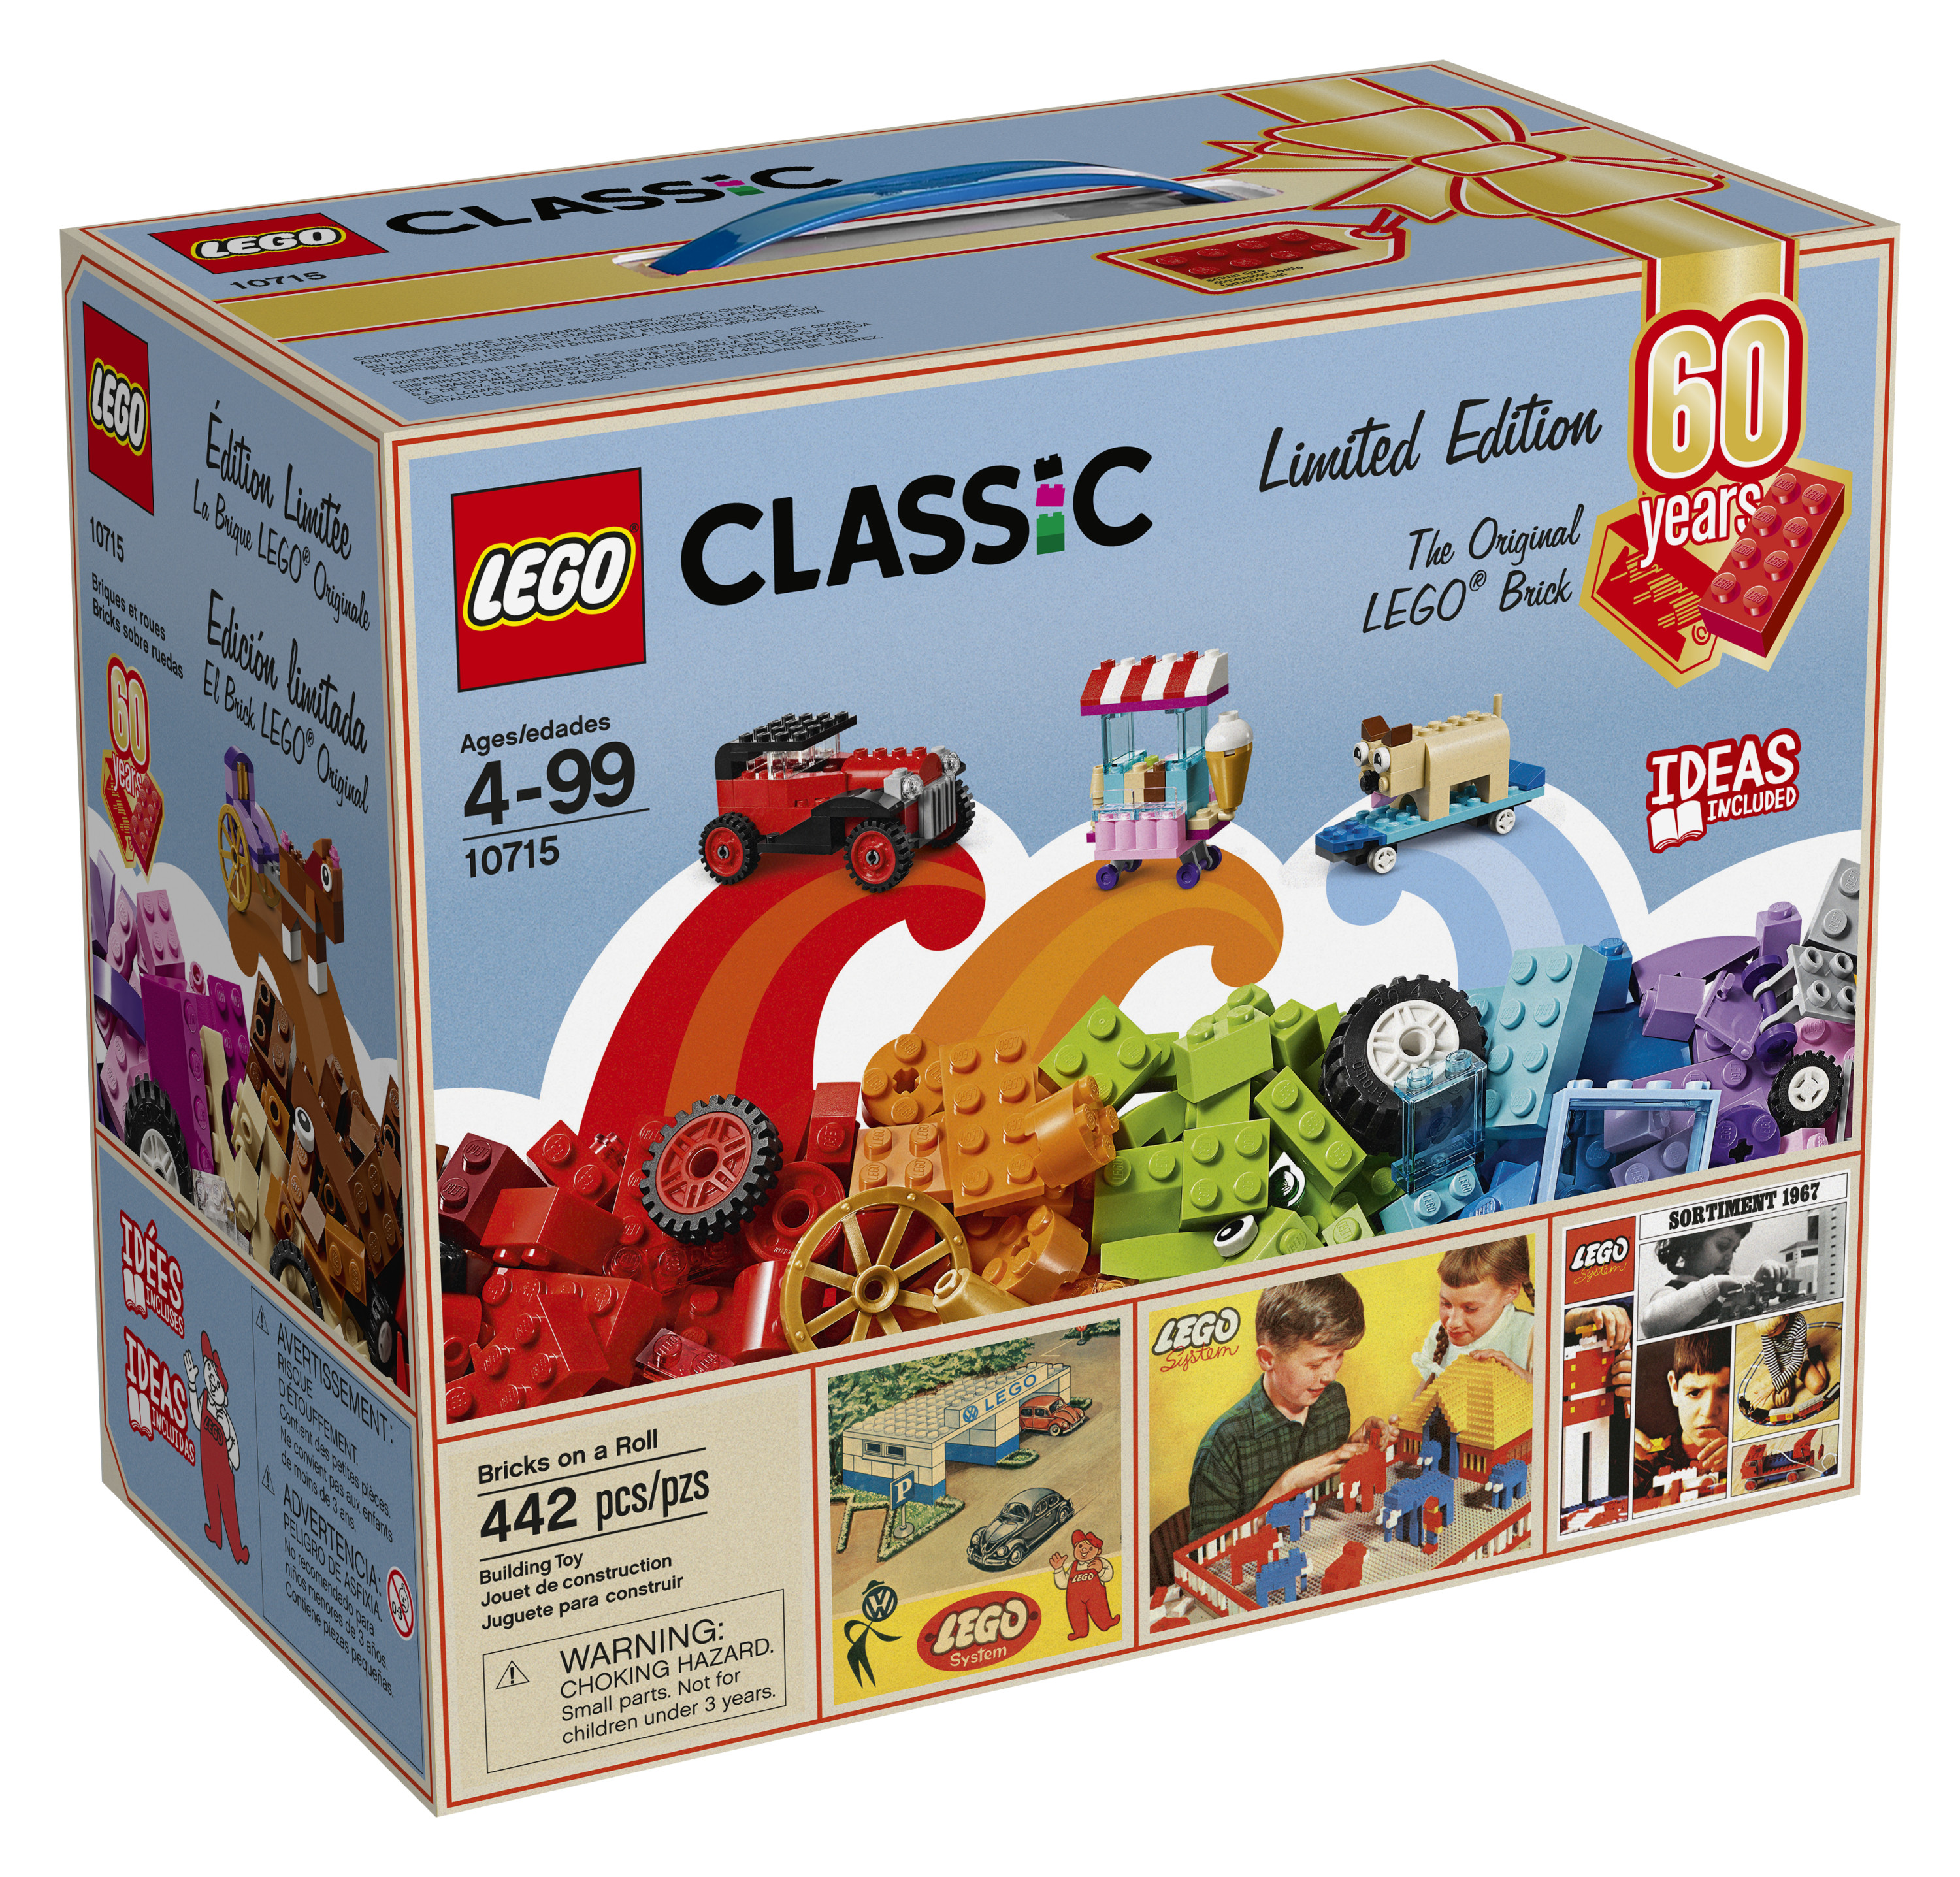 LEGO 60th Anniversary - Limited Edition Sets - Walmart.com